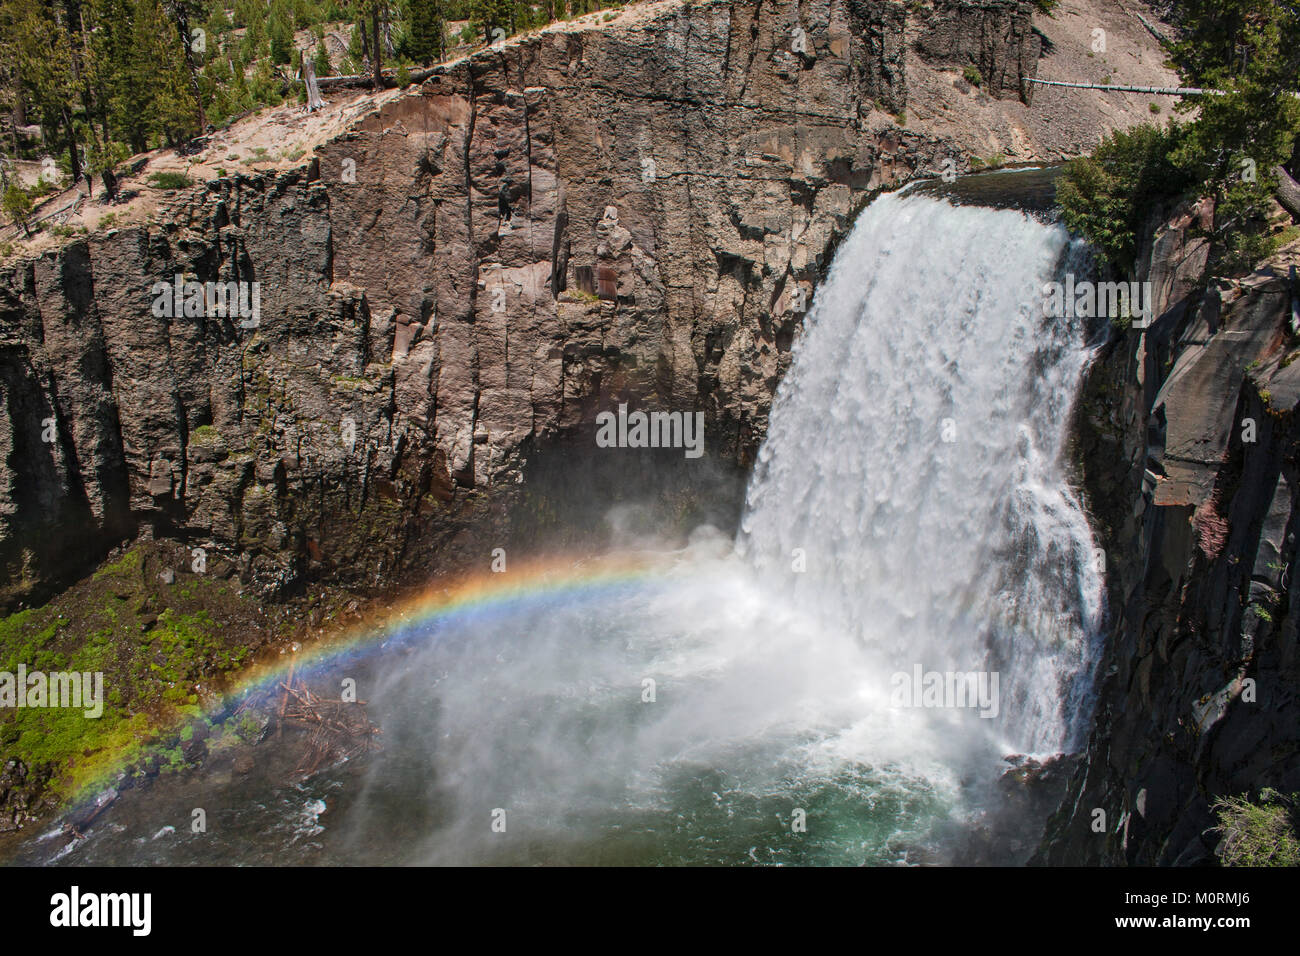 Rainbow Falls, Devils Postpile National Monument, Inyo National Forest, California, USA - Stock Image